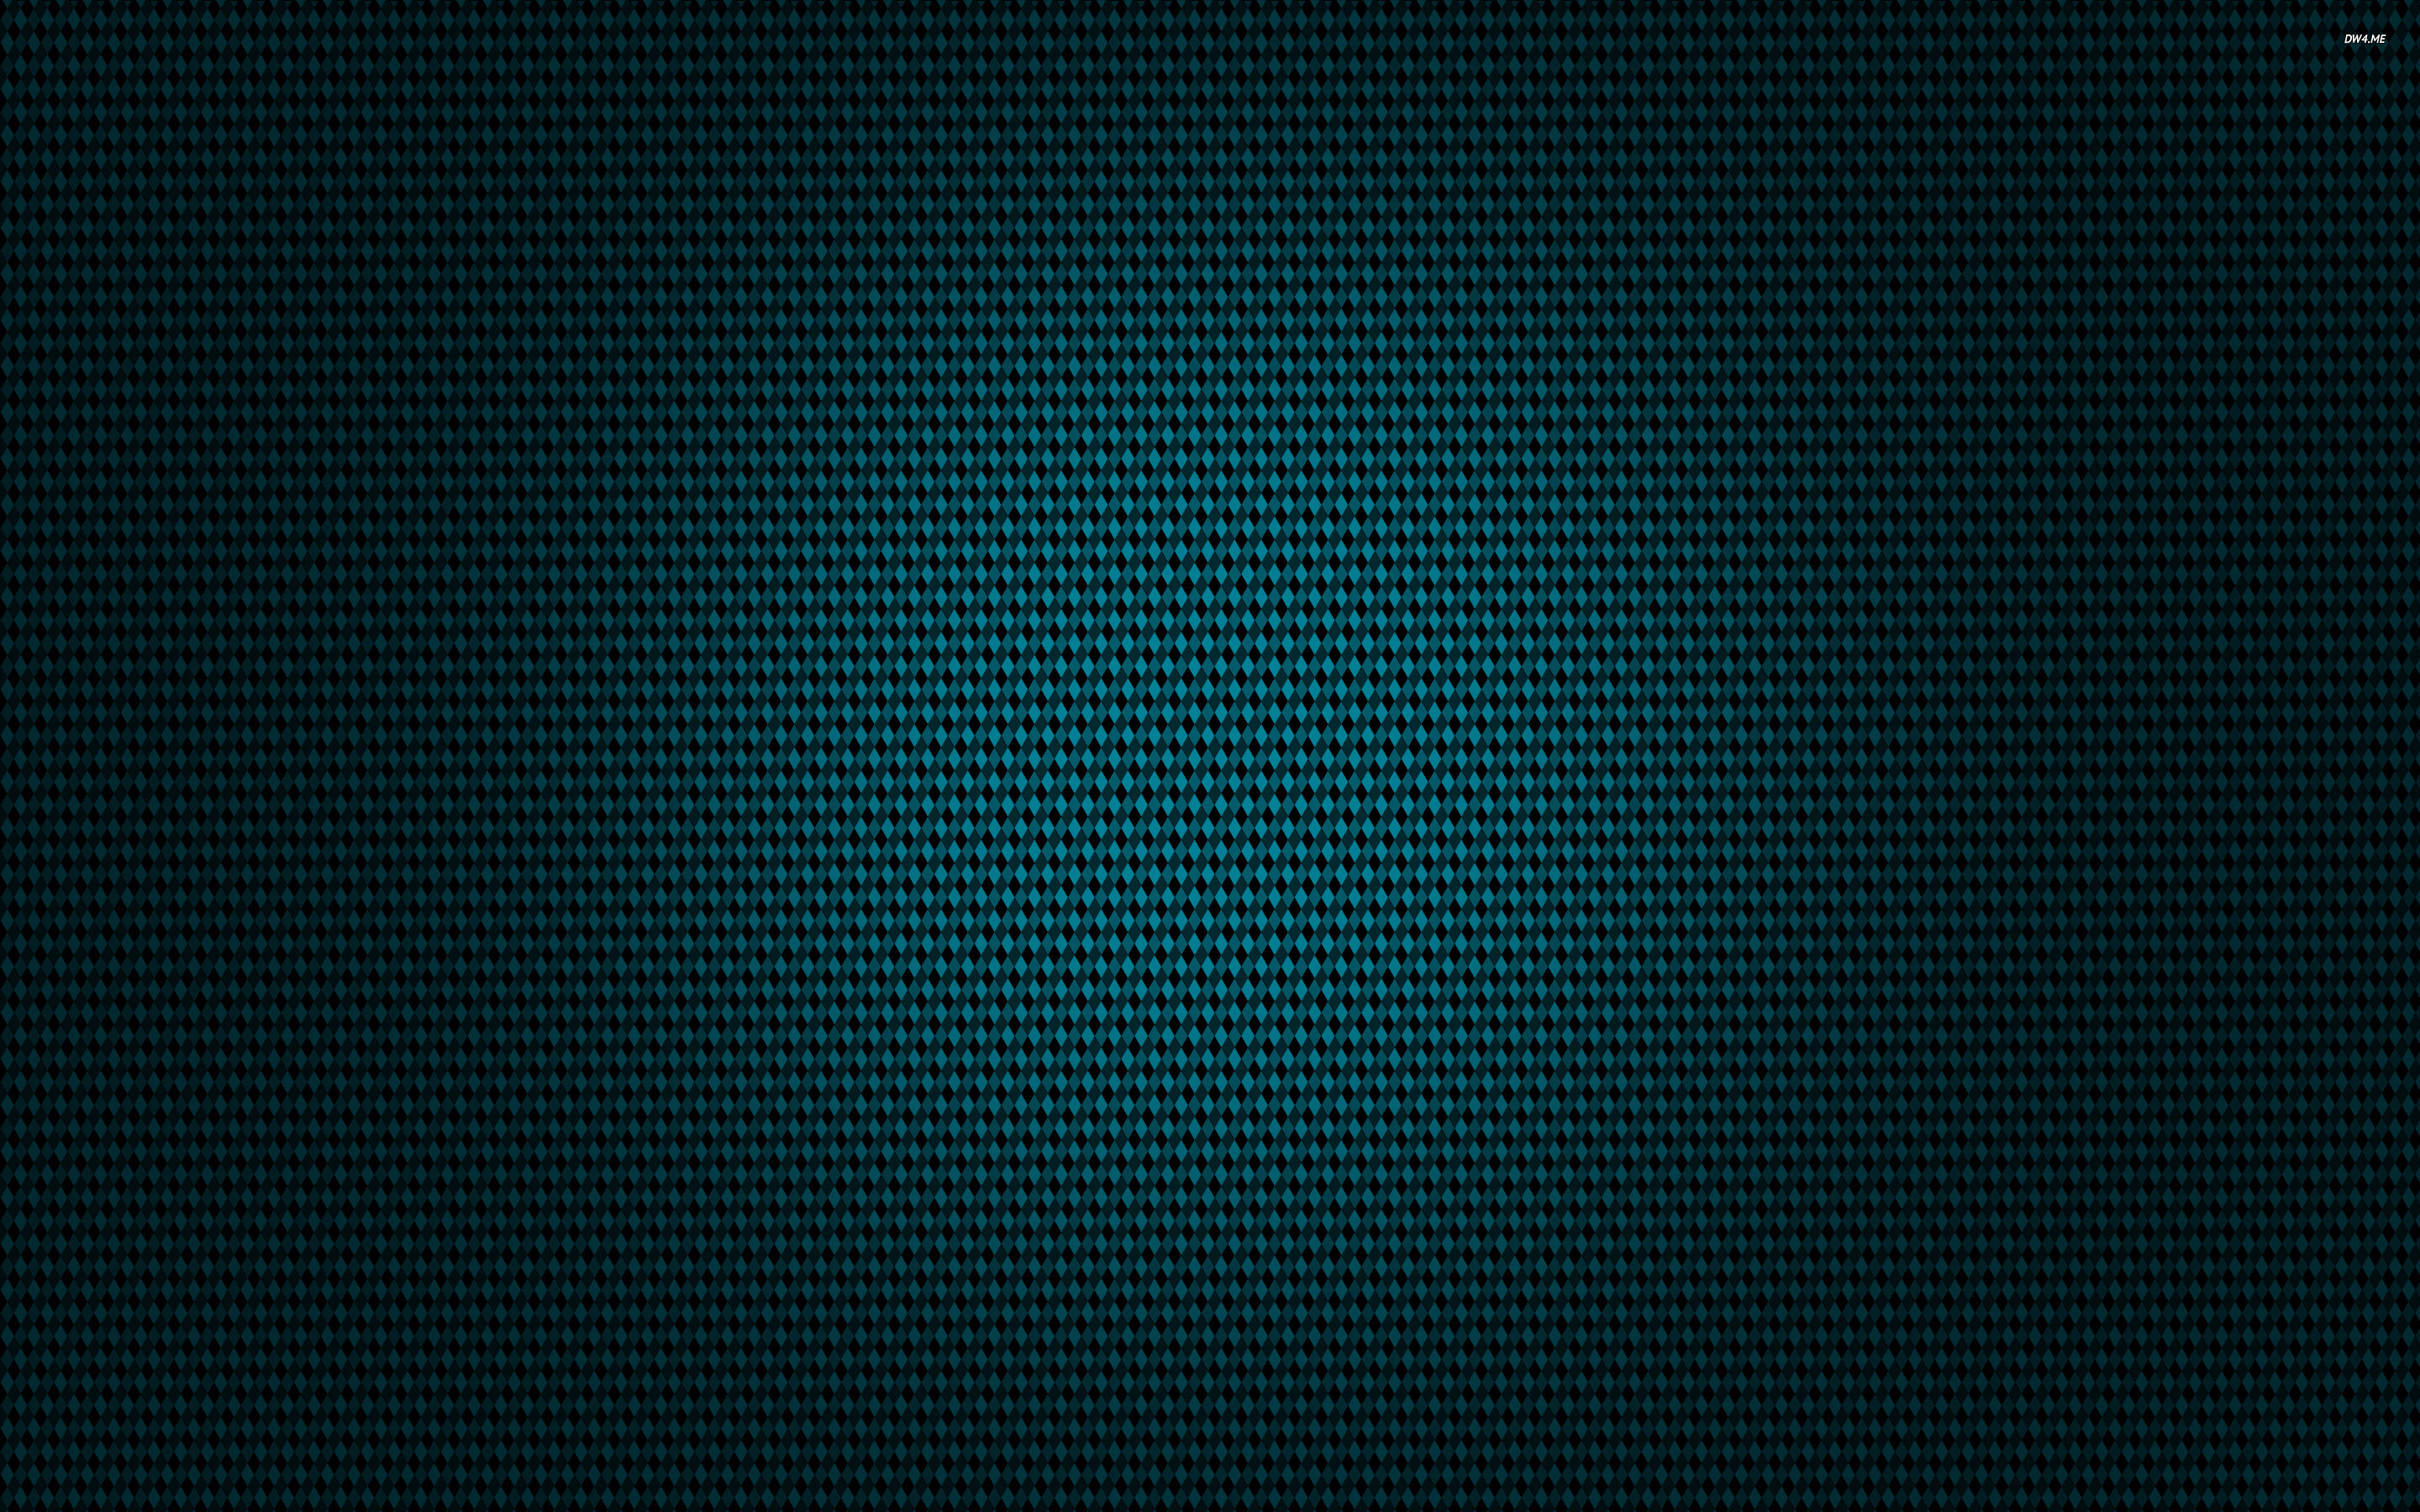 Green rhombus pattern wallpaper   818572 2880x1800